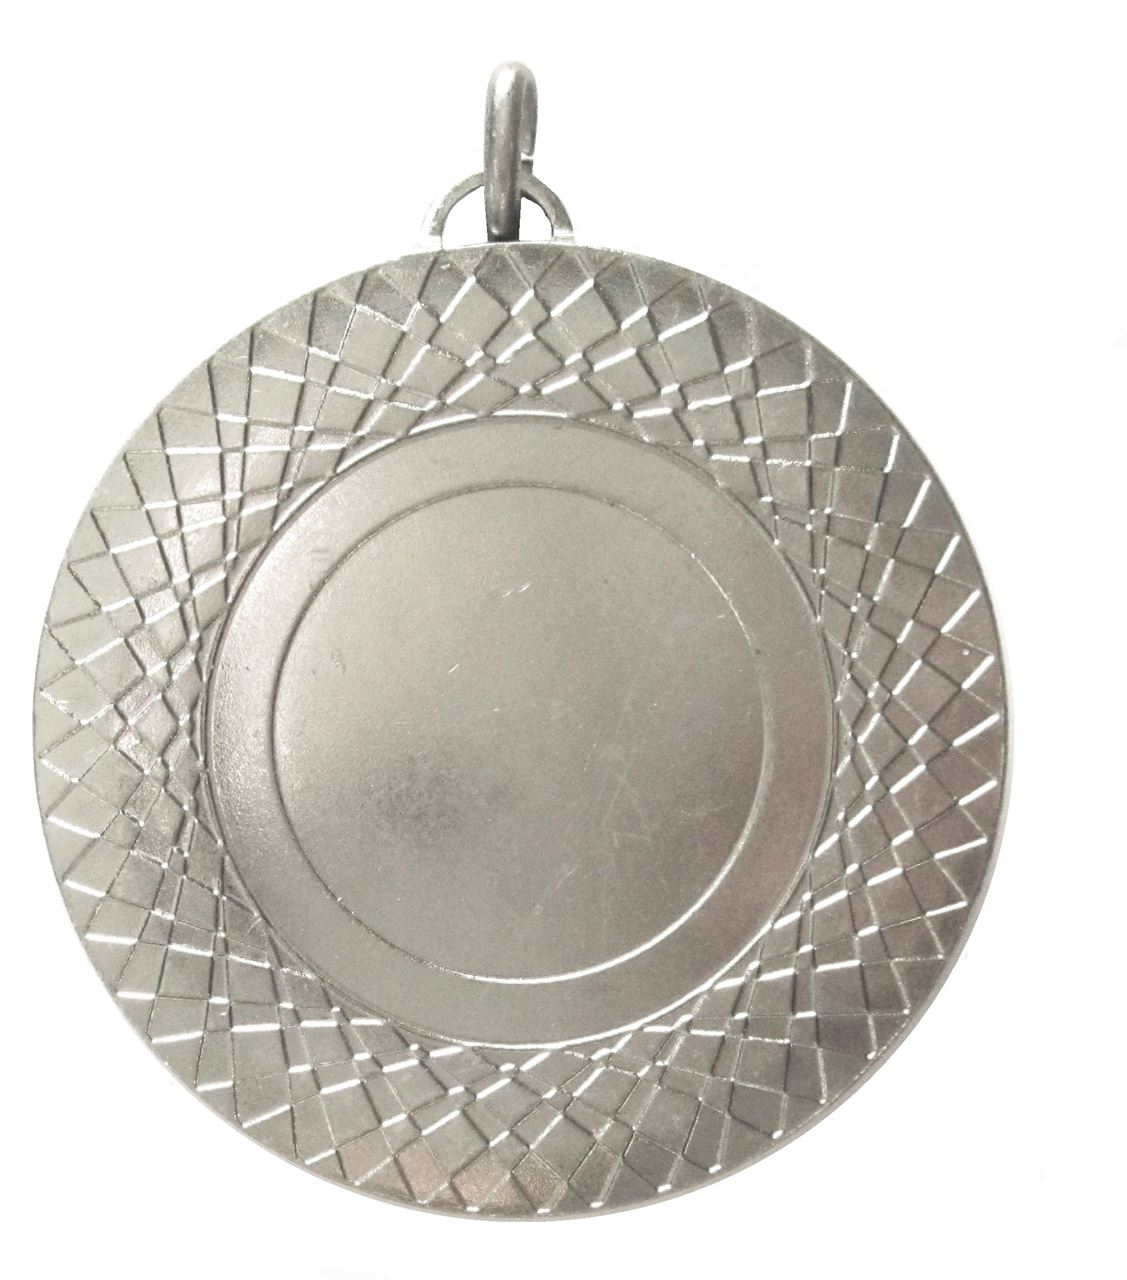 Silver Assertion Bright Finish Medal (size: 50mm) - 5807